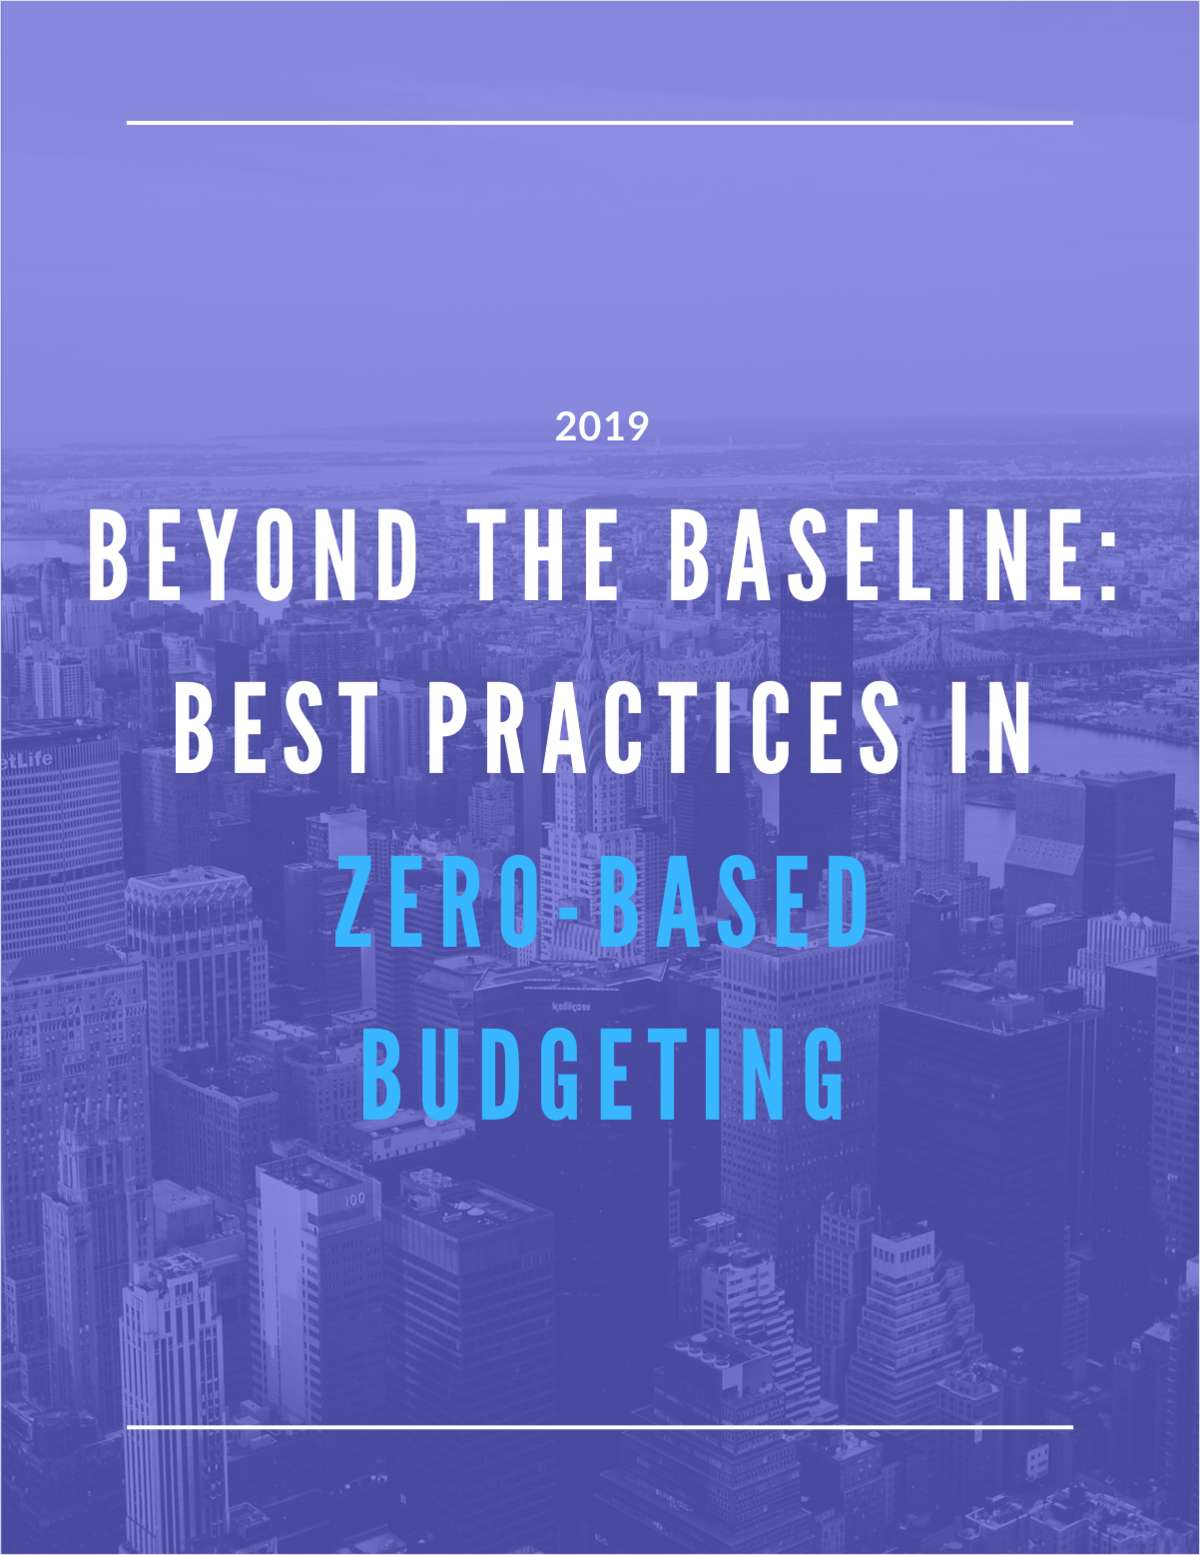 Beyond the Baseline: Best Practices in Zero-Based Budgeting